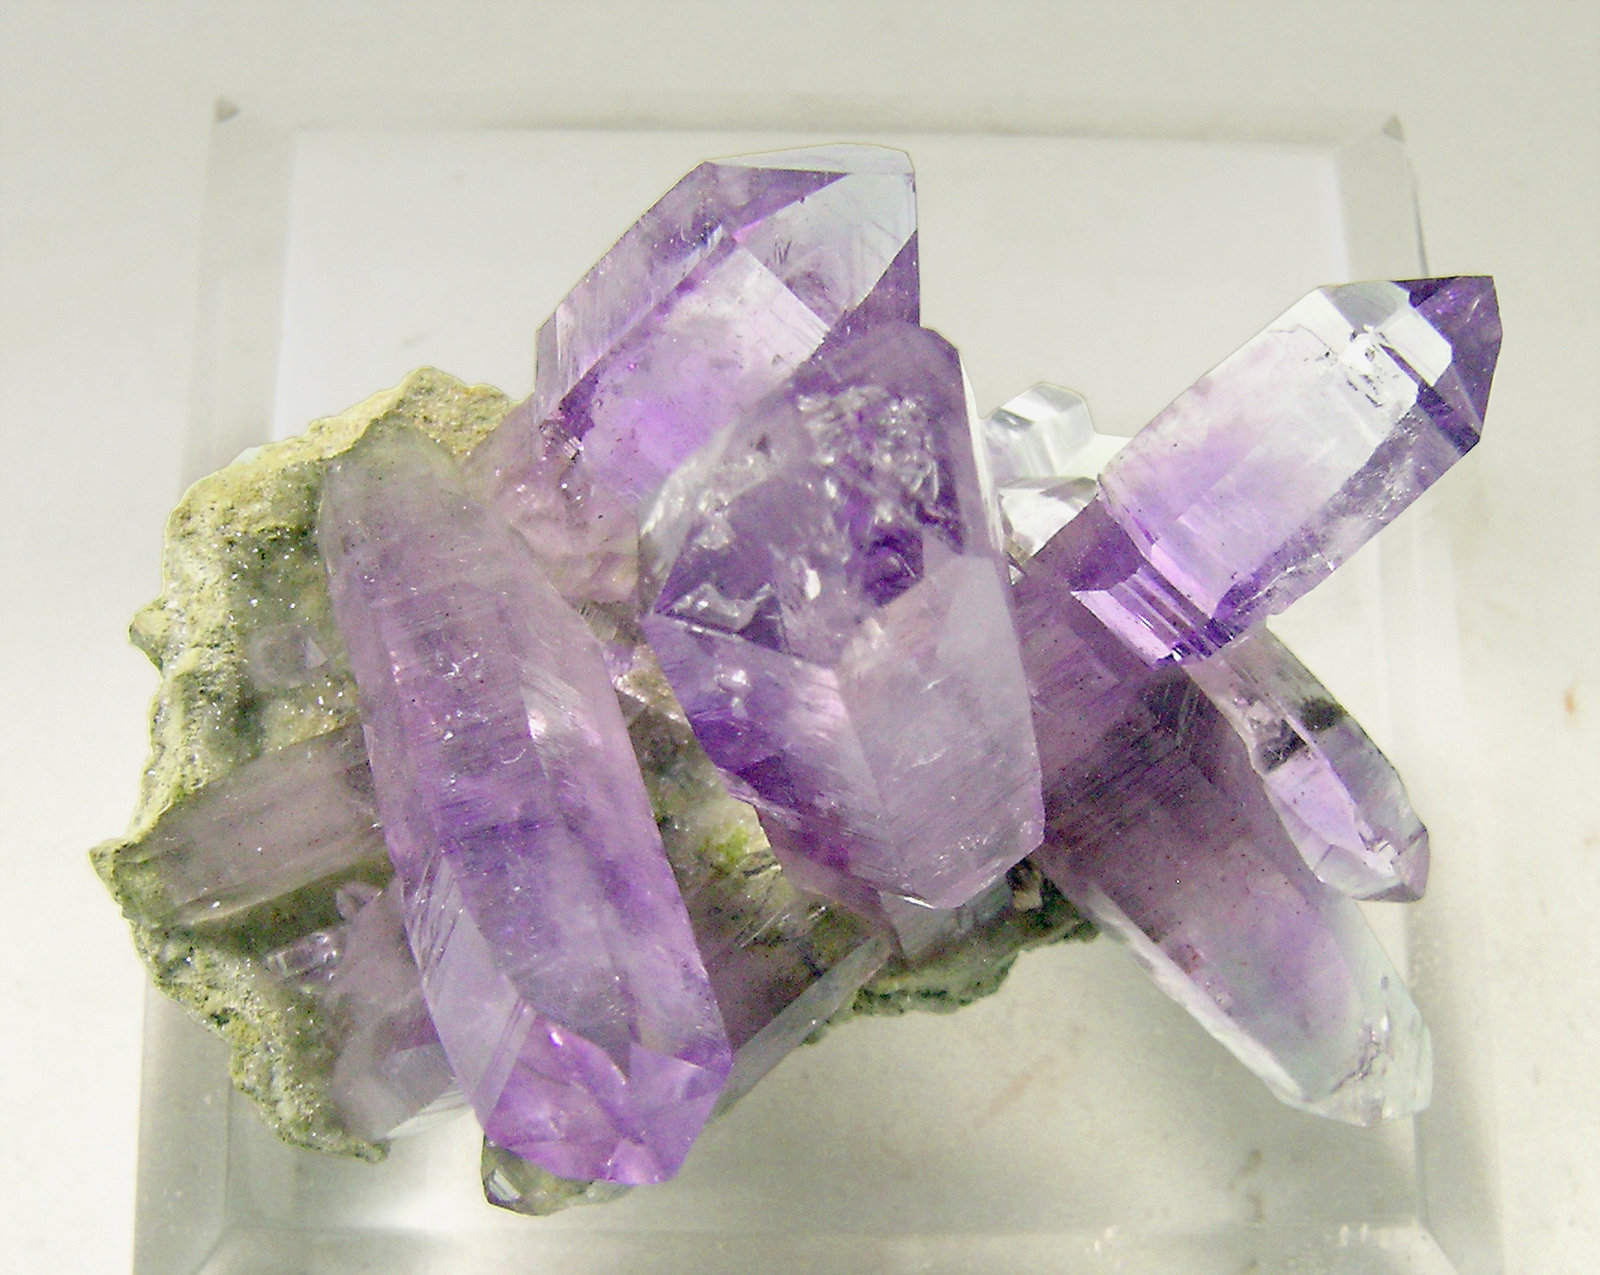 specimens/s_imagesN4/Quartz_Amethyst-HA7N4t.jpg